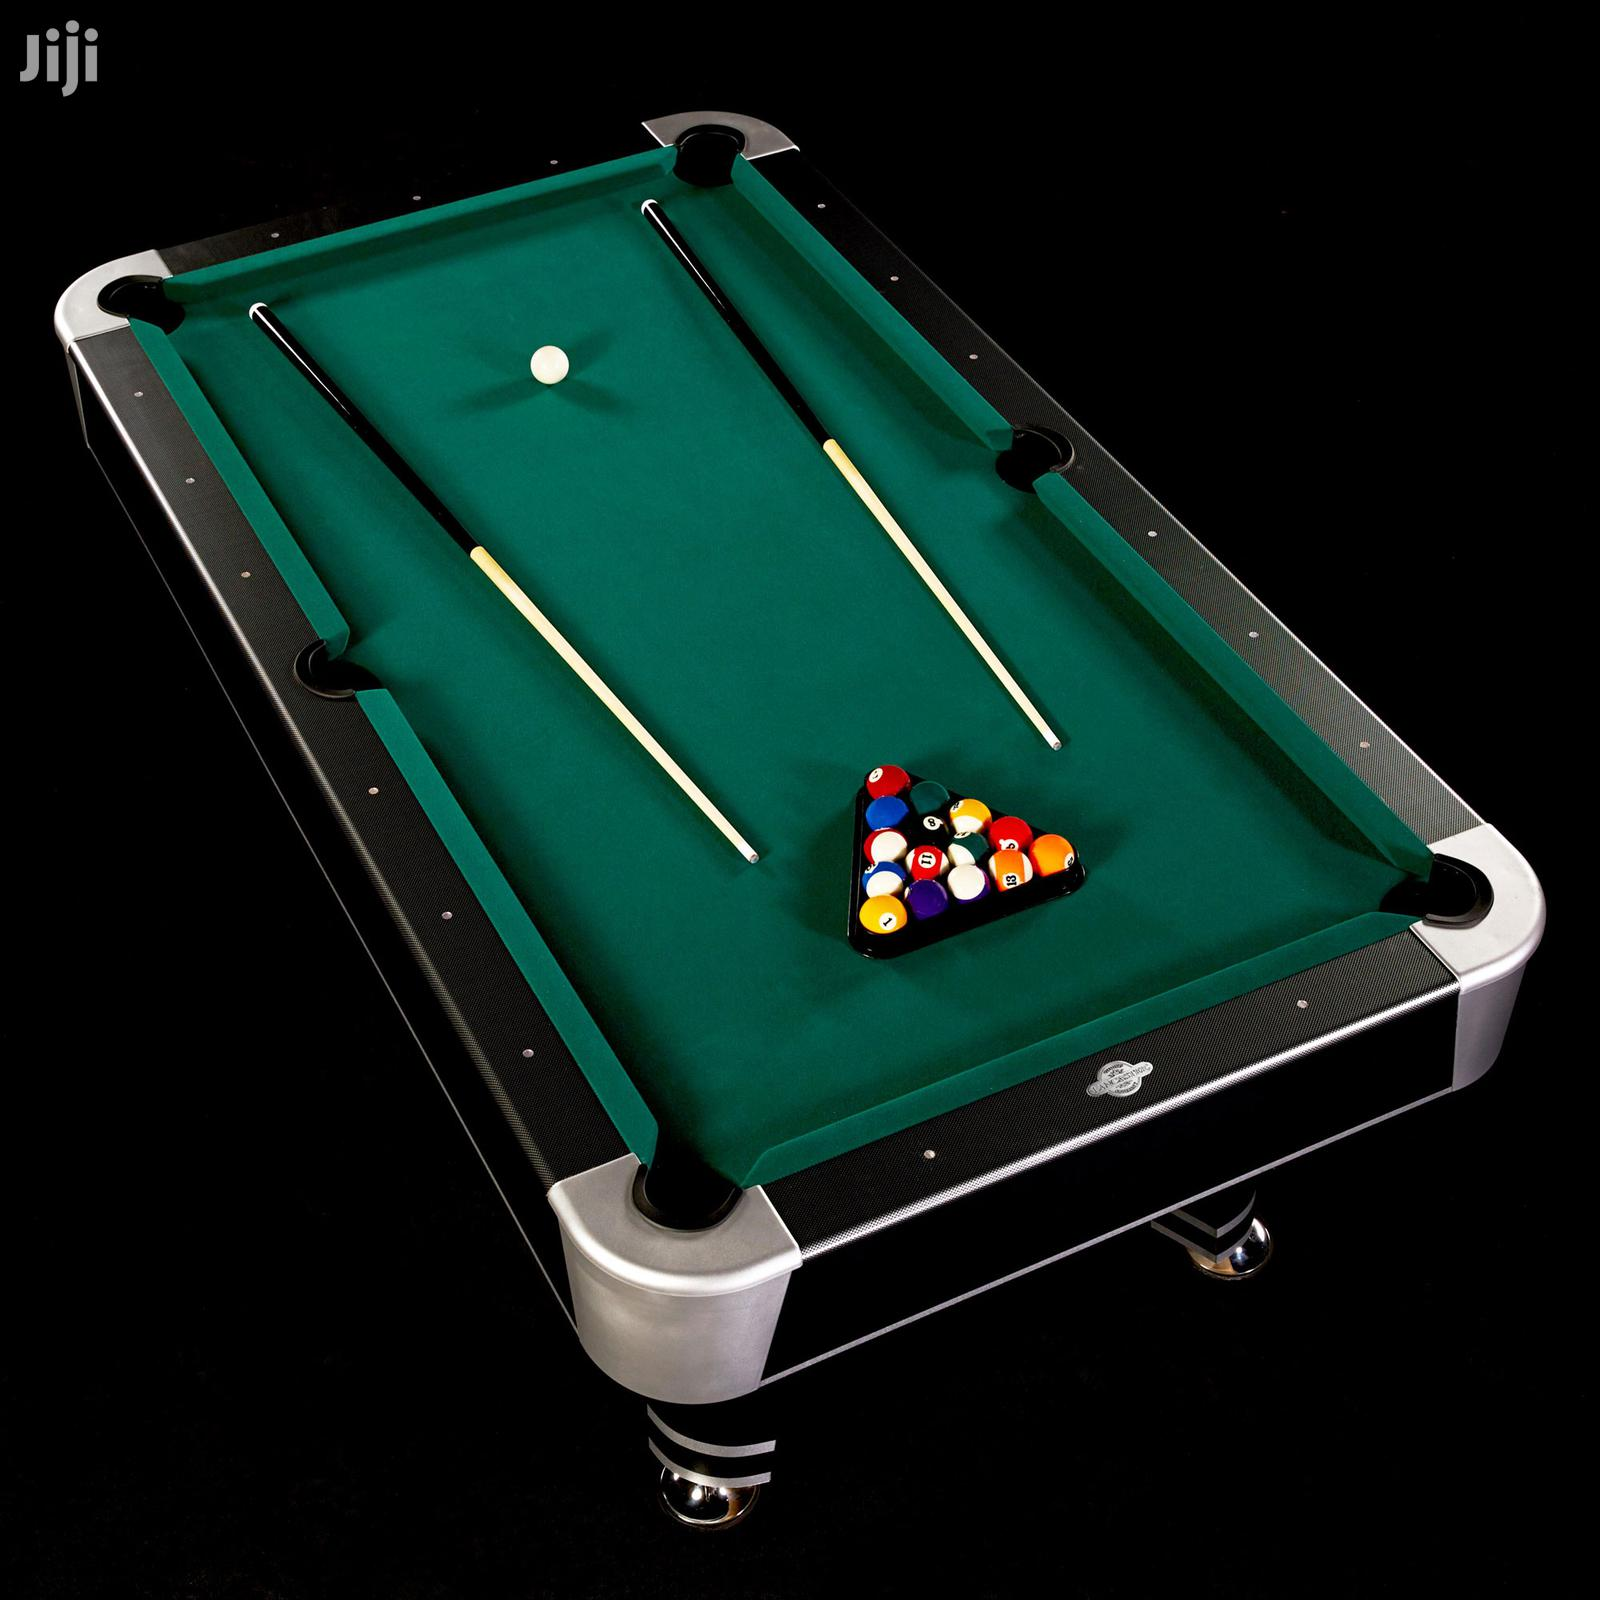 Lancaster 90 Inch Arcade Billiard Table With | Sports Equipment for sale in Adenta Municipal, Greater Accra, Ghana